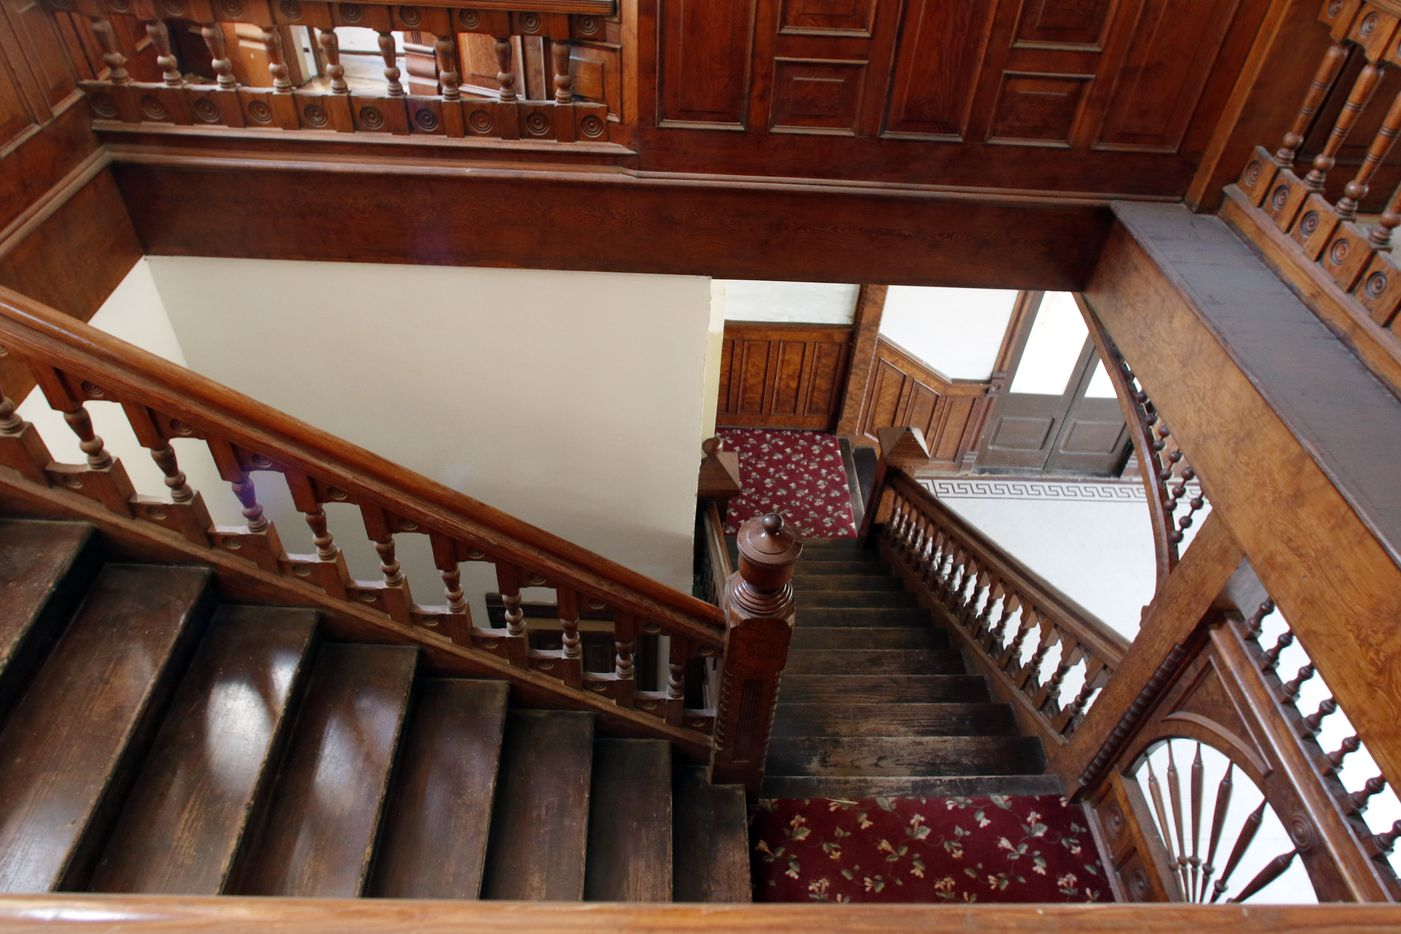 One of Alan Loudermilk's favorite features of the Ginocchio Hotel, a building he and his business partners are restoring, is the curly pine woodwork of its stairs. He imagines bridal parties posing for photos there.